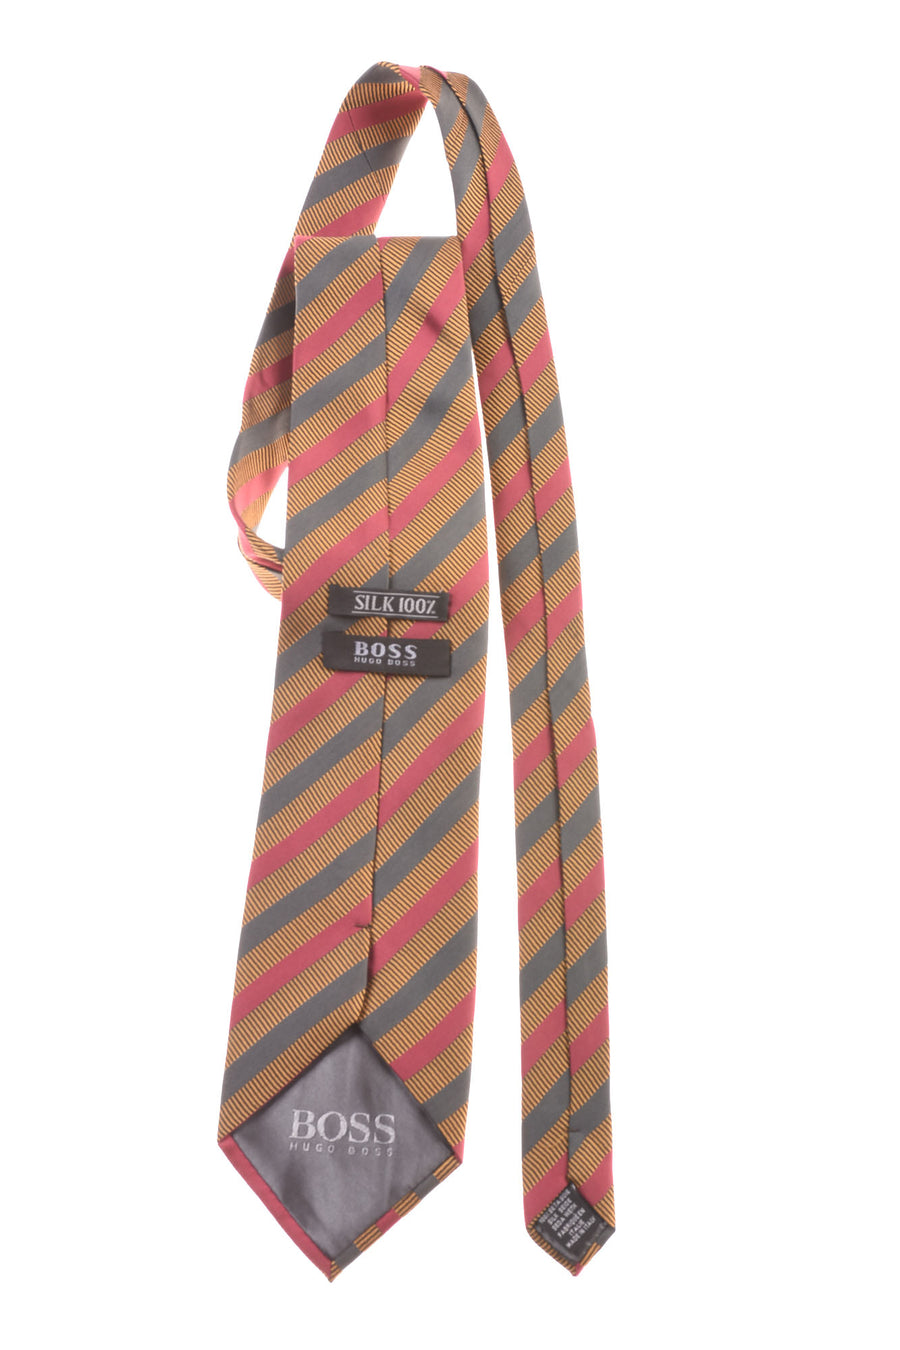 USED Hugo Boss Men's Tie One Size Gold, Maroon, & Teal